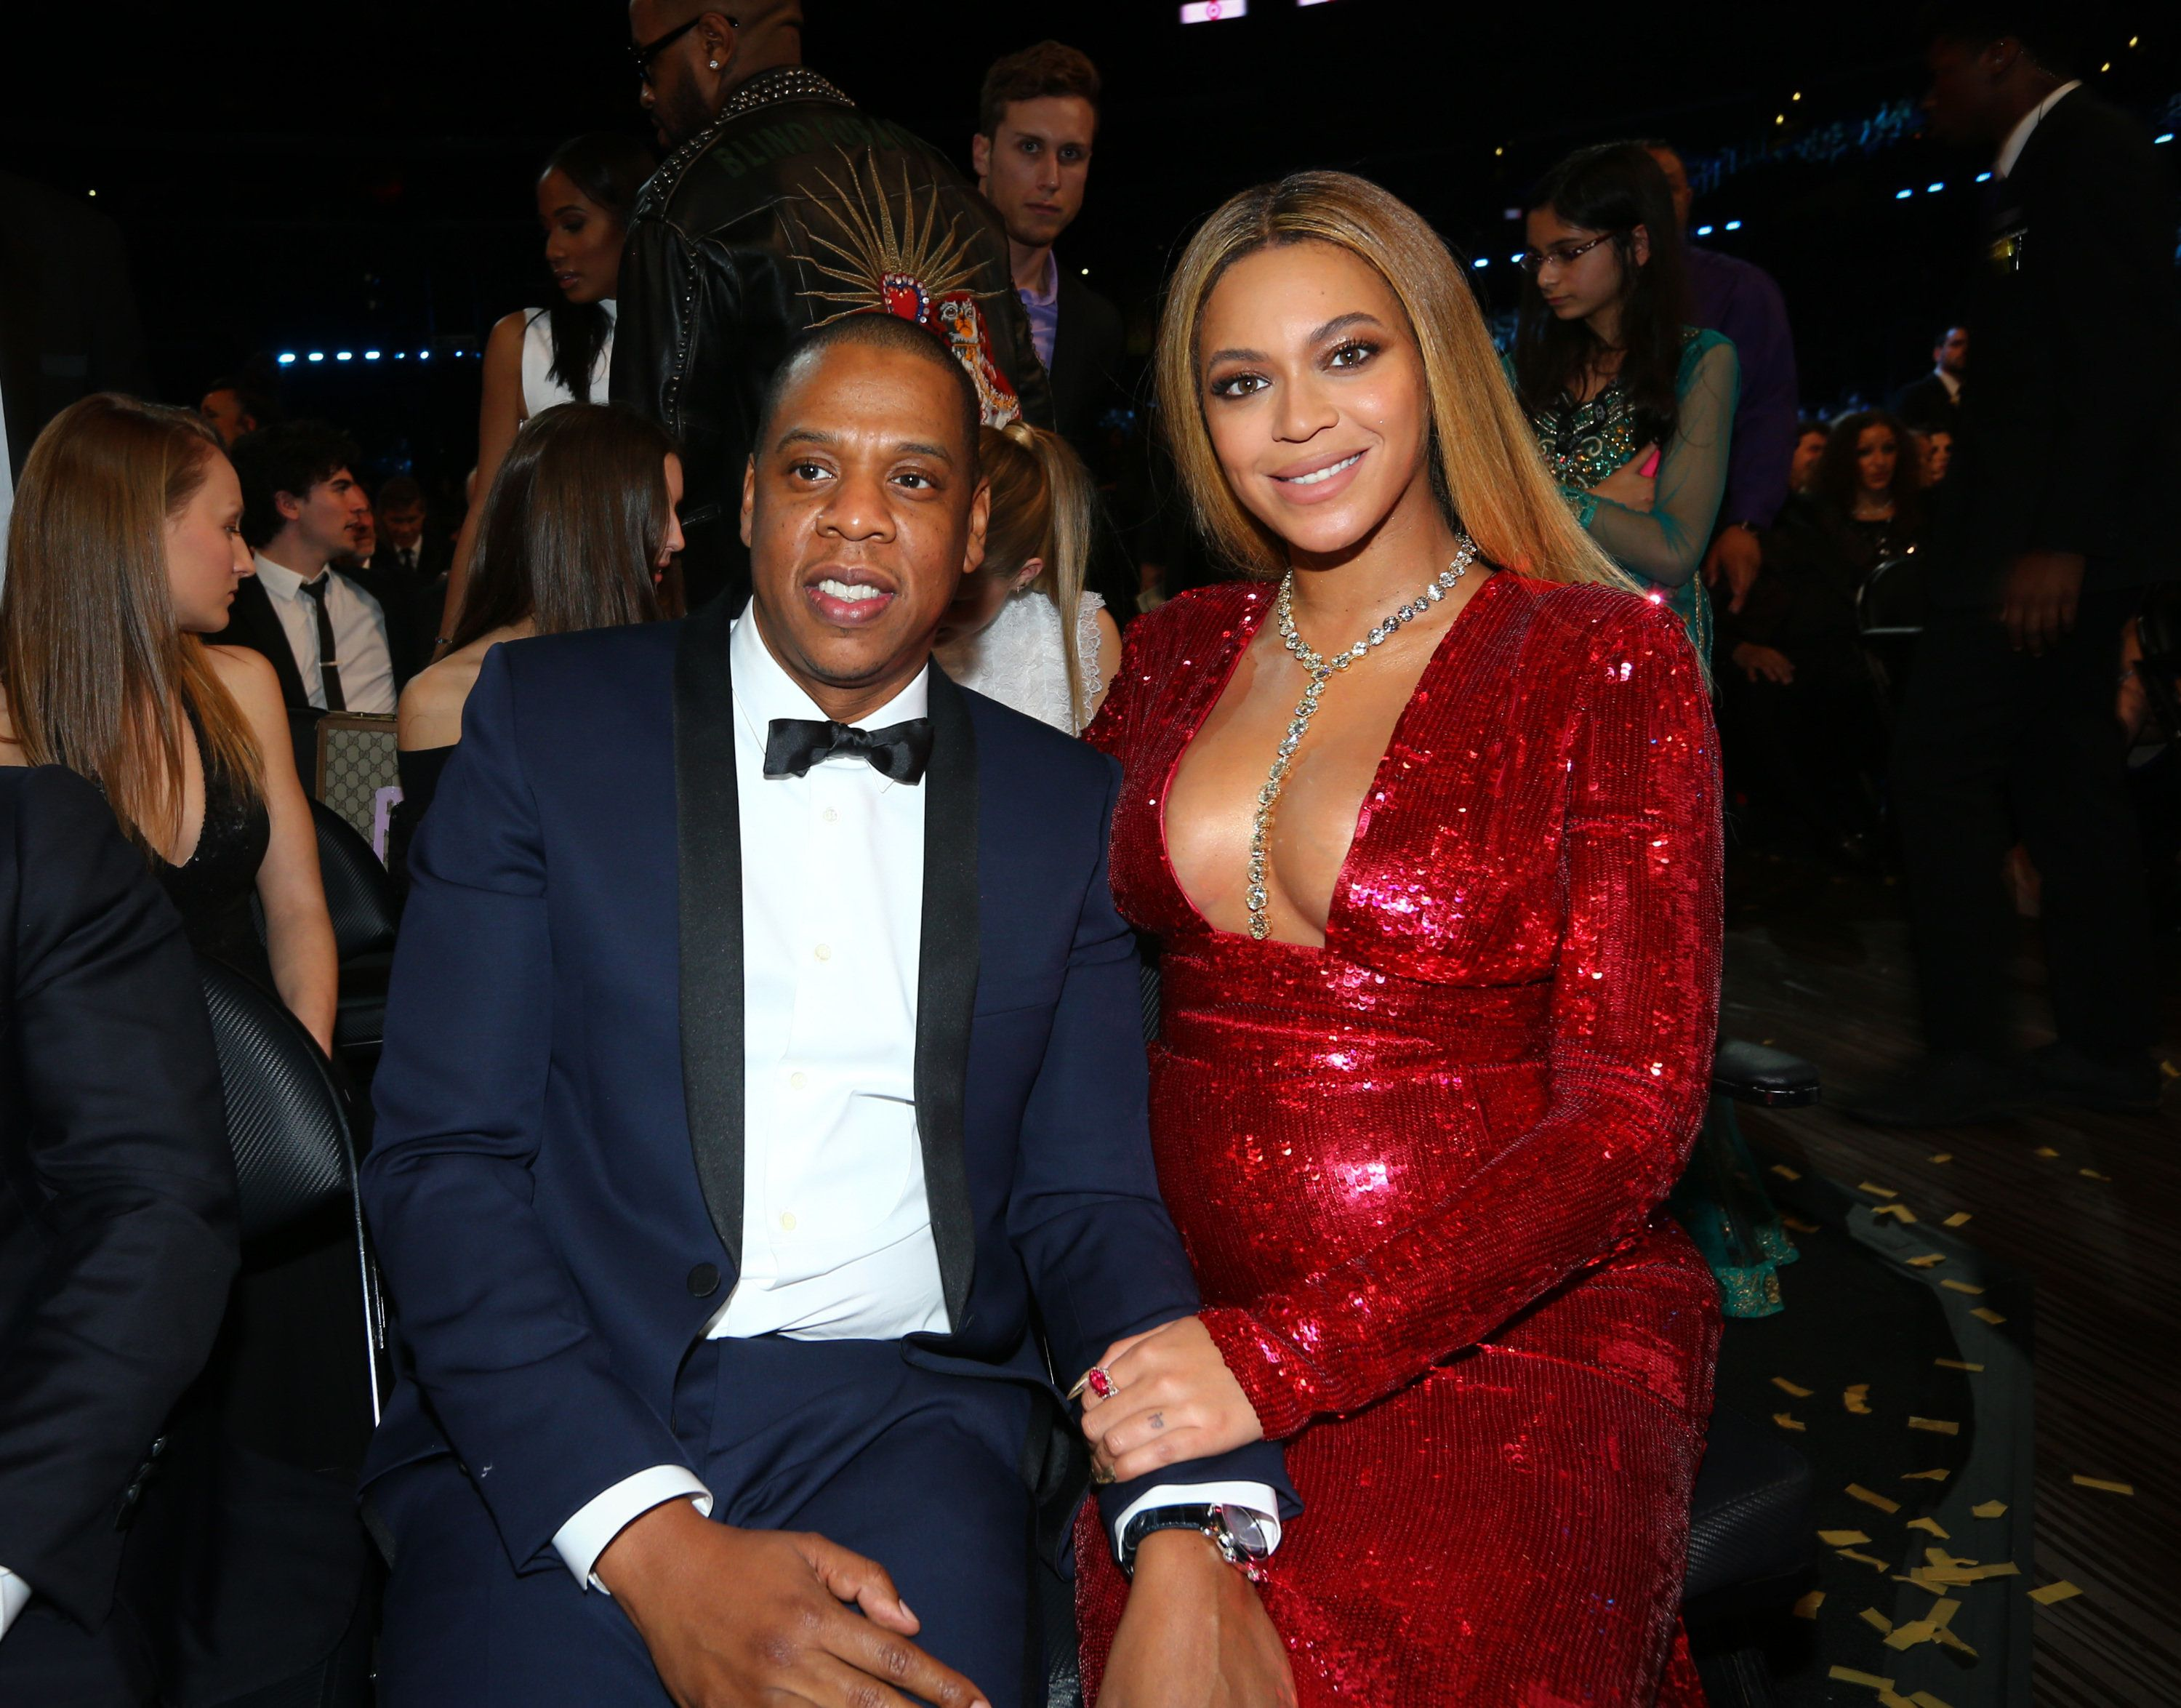 LOS ANGELES - FEBRUARY 12: Jay Z and Beyoncé attend at THE 59TH ANNUAL GRAMMY AWARDS, broadcast live from the STAPLES Center in Los Angeles, Sunday, Feb. 12 (8:00-11:30 PM, live ET/5:00-8:30 PM, live PT; 6:00-9:30 PM, live MT) on the CBS Television Network.   (Photo by Mark Davis/CBS via Getty Images)